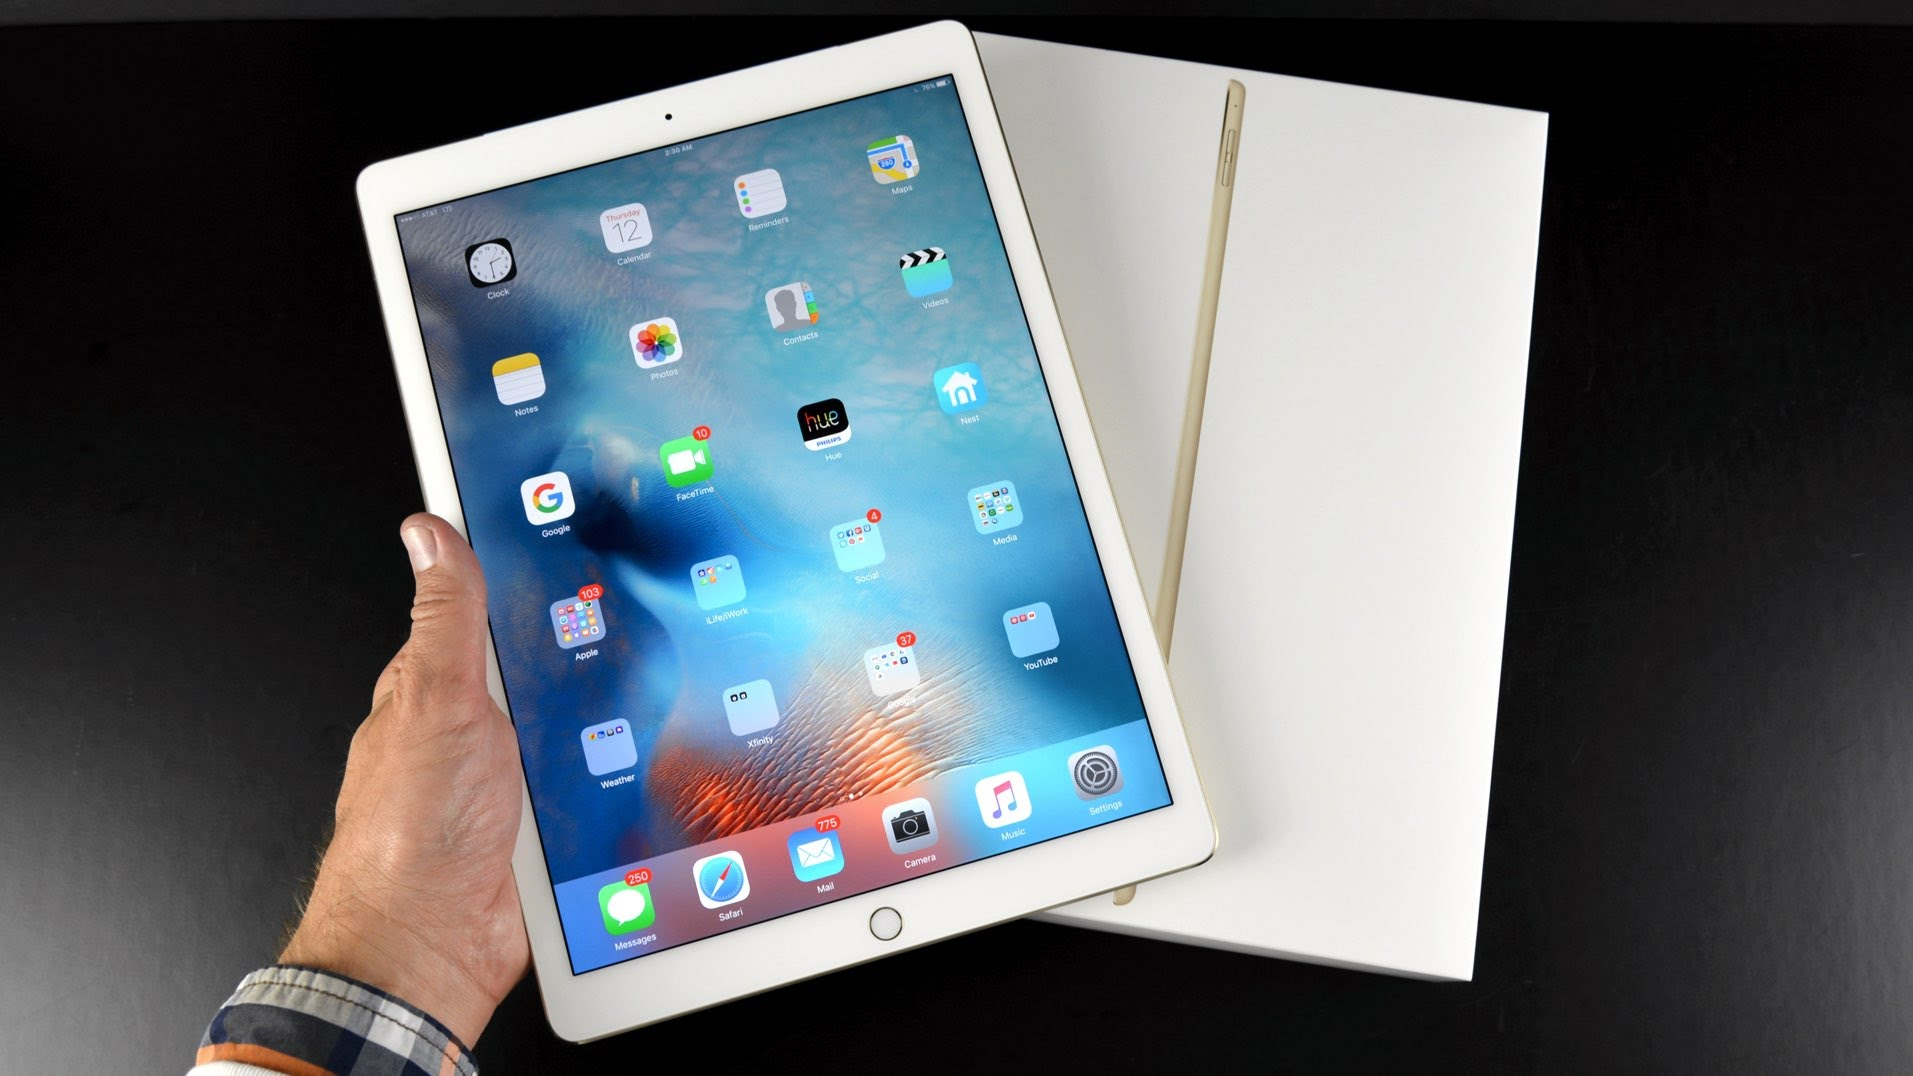 Apple iPad Pro ads portray the usefulness of features ...